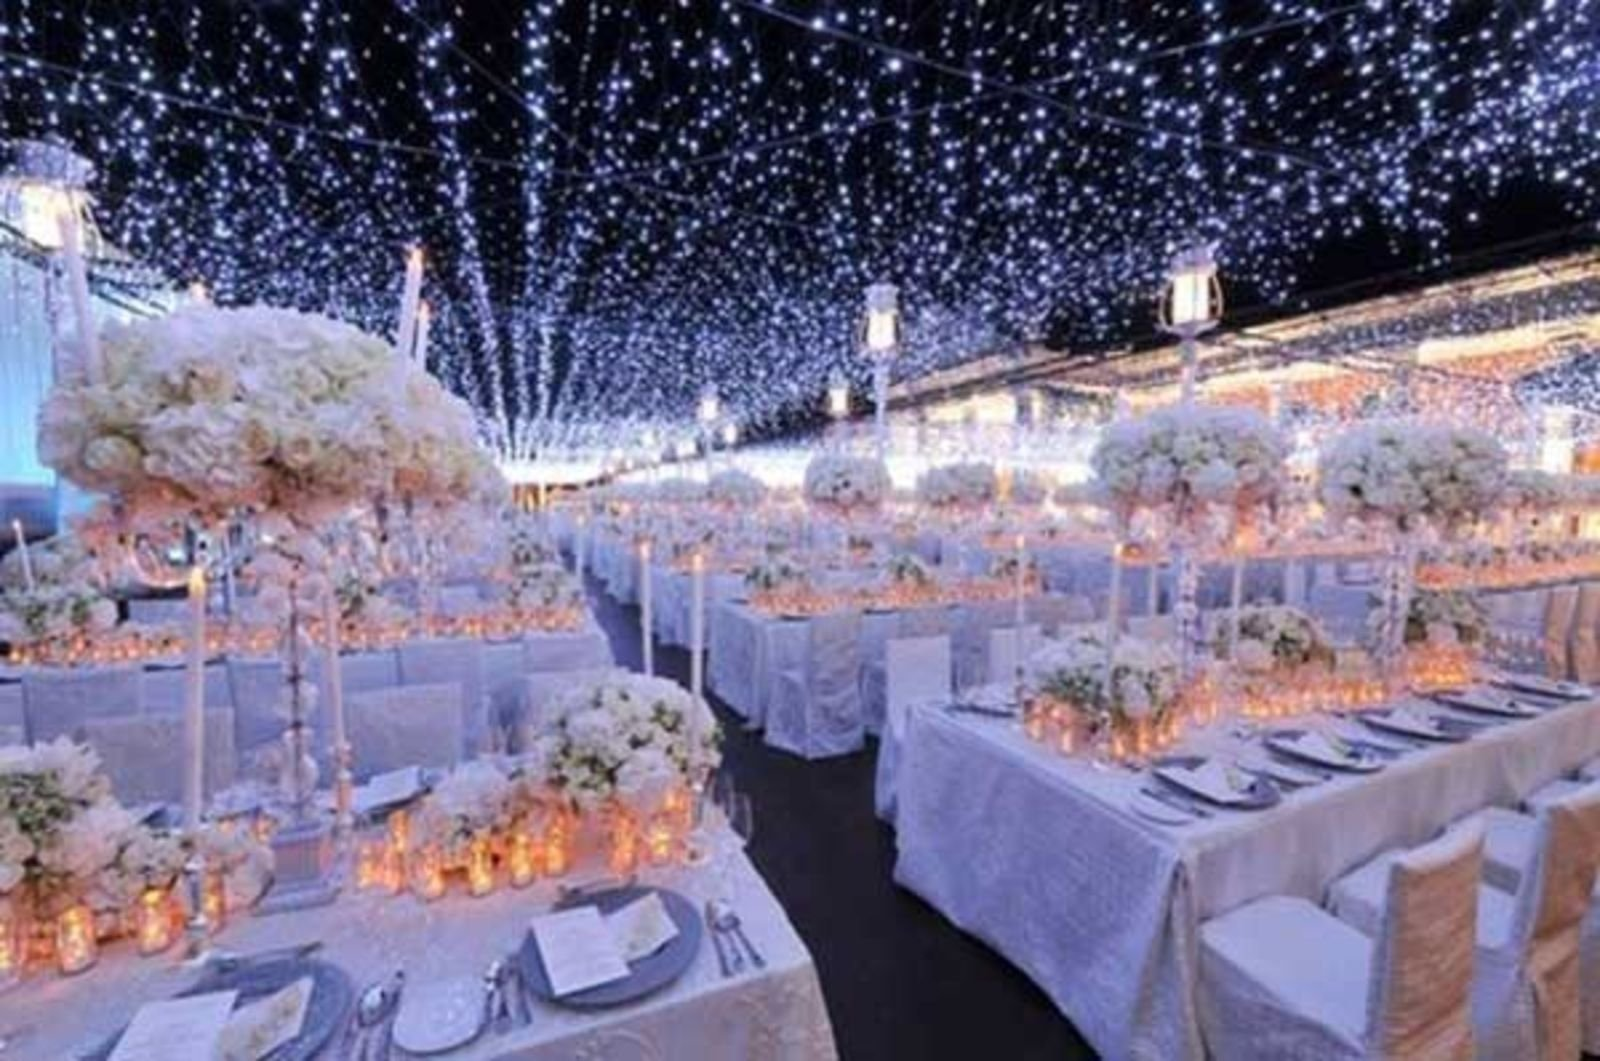 10 Attractive Reception Ideas On A Budget unbelievable wedding reception ideas on a budget 99 additionally 2020